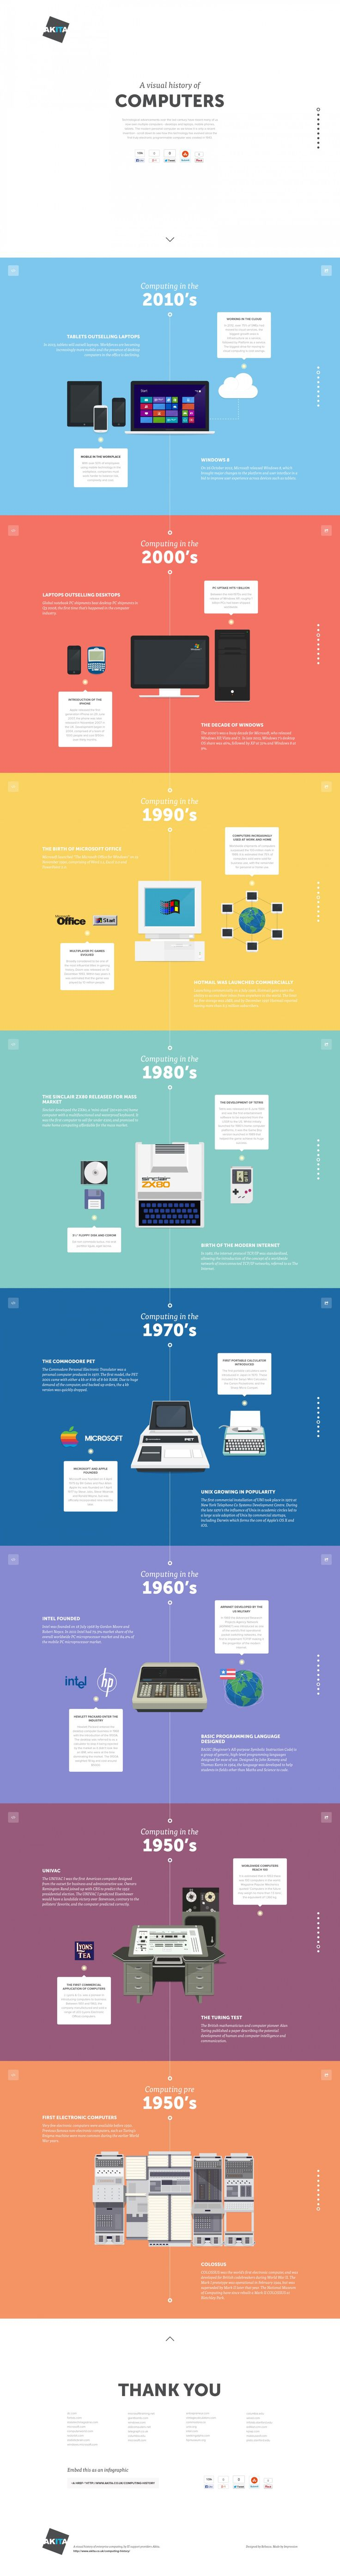 A visual history of computers #Infographic